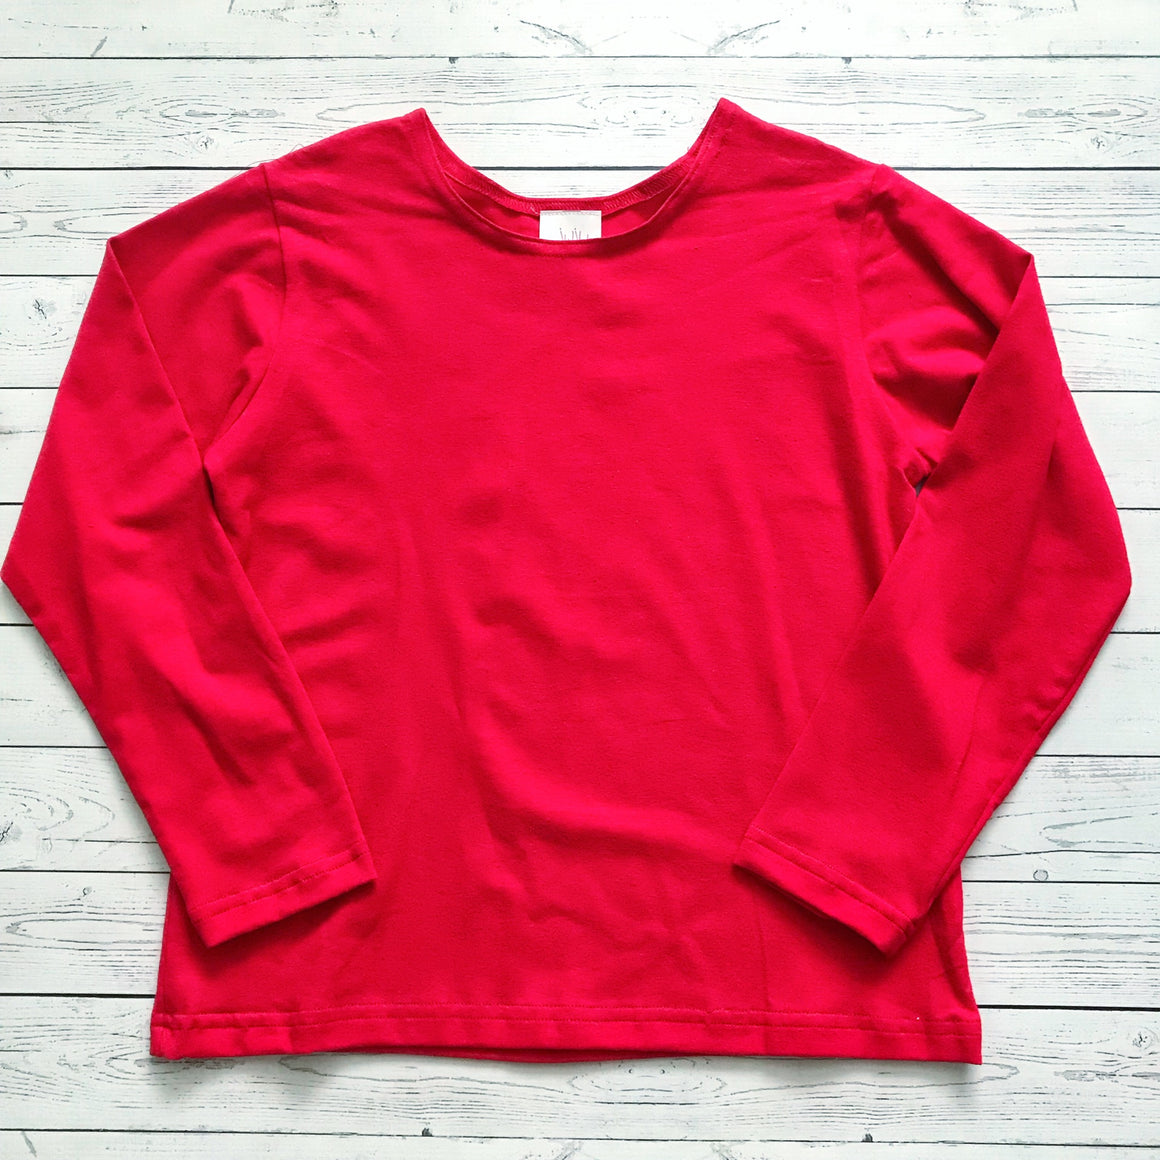 Juju & Jack Sleepware Red Long Sleeve Pajama Top